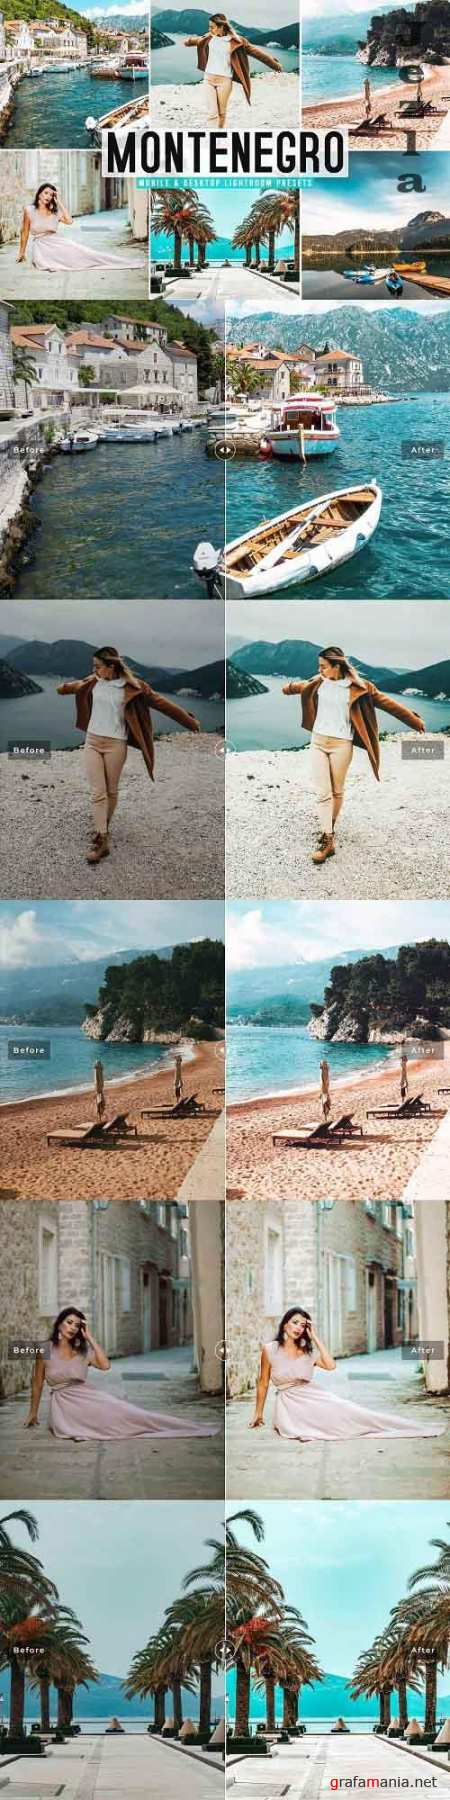 Montenegro Pro Lightroom Presets - 5802743 - Mobile & Desktop